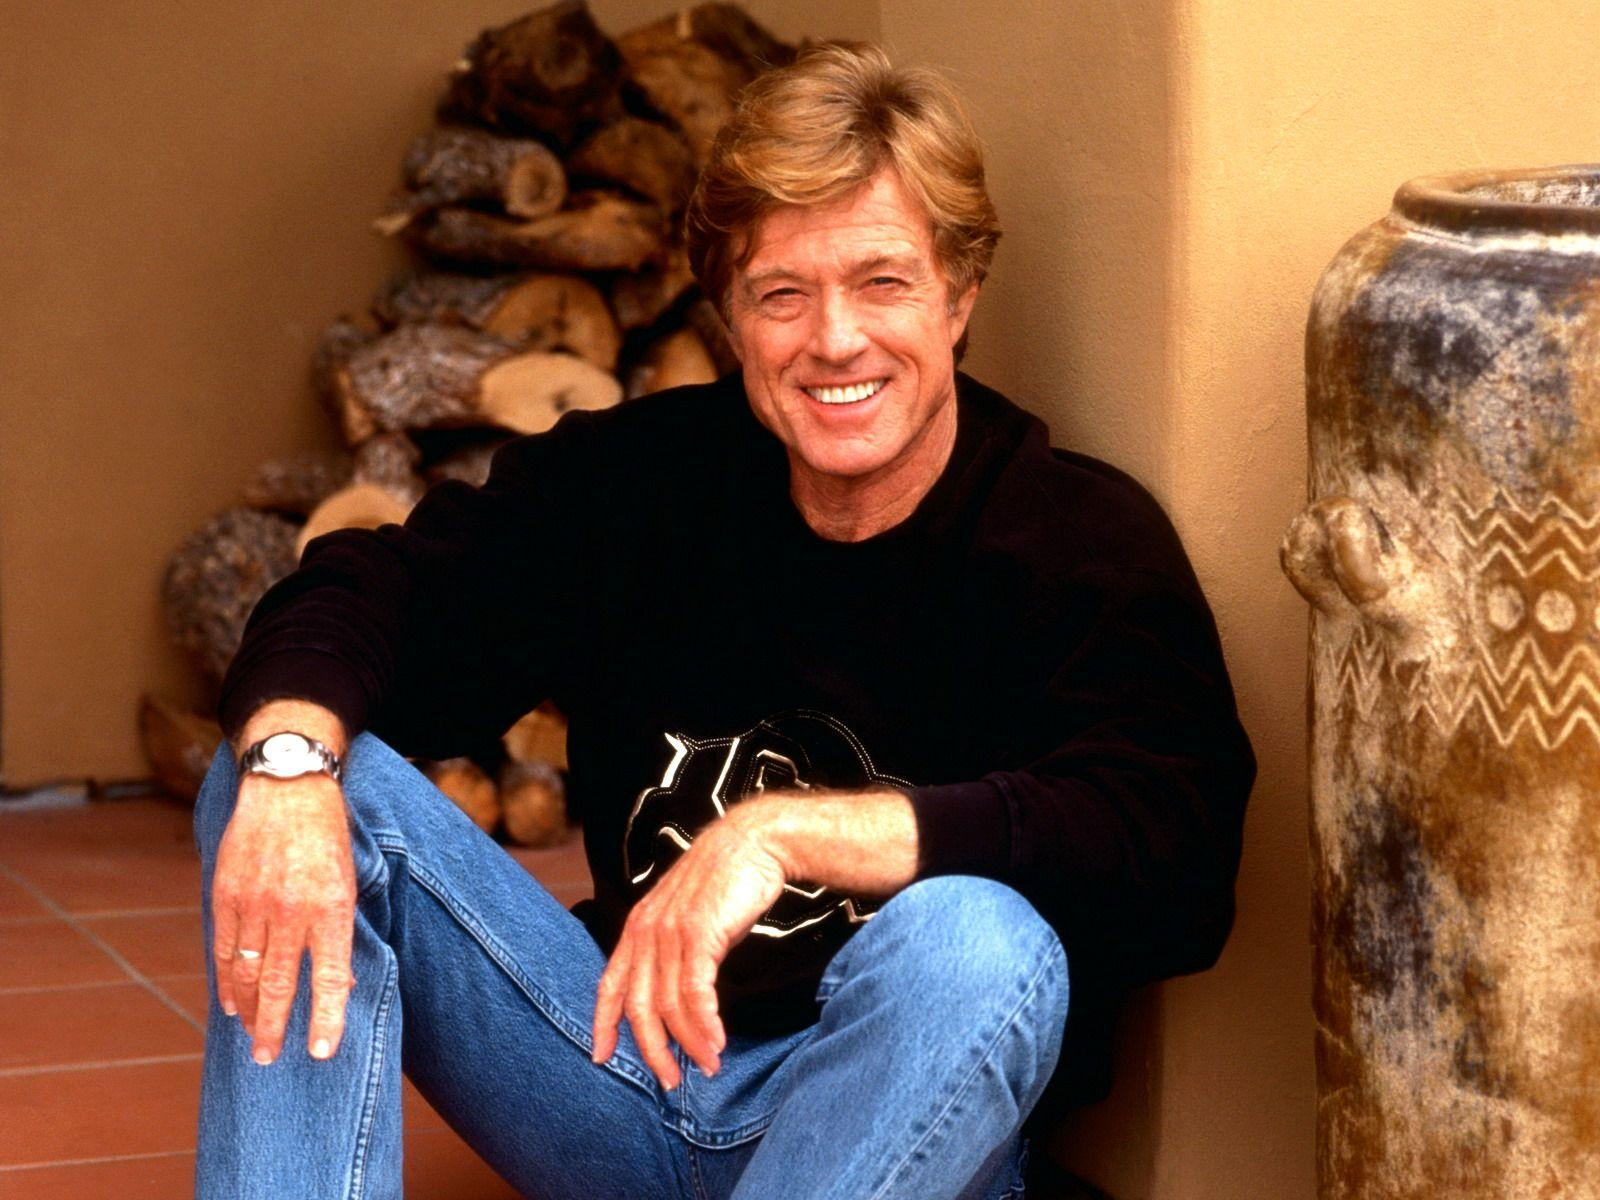 Robert Redford Wallpapers, 44 Robert Redford Images and Wallpapers ...